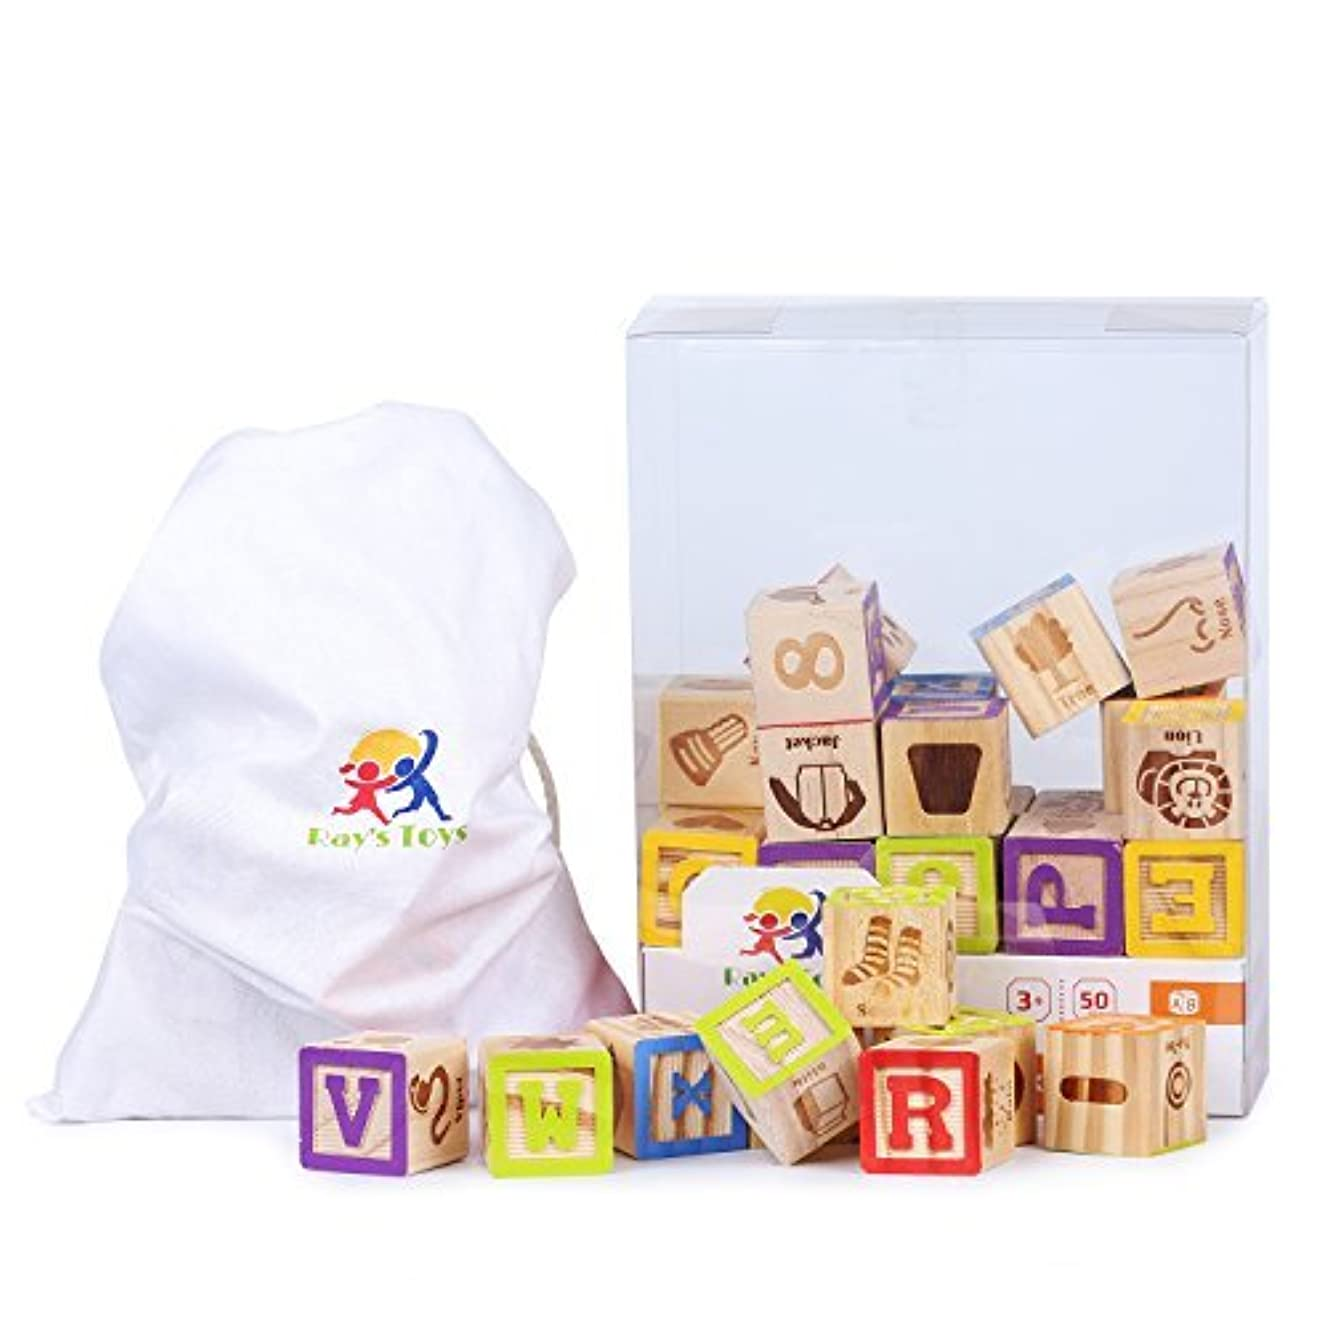 Ray's Toys Wooden Alphabet Blocks Set Colorful ABC & 123 Toddler Blocks w/ Cloth Storage Pouch/ Sturdy, Durable Learning Alphabet Building Blocks for Kids/ Top Educational Toy/ Great Gifting Idea